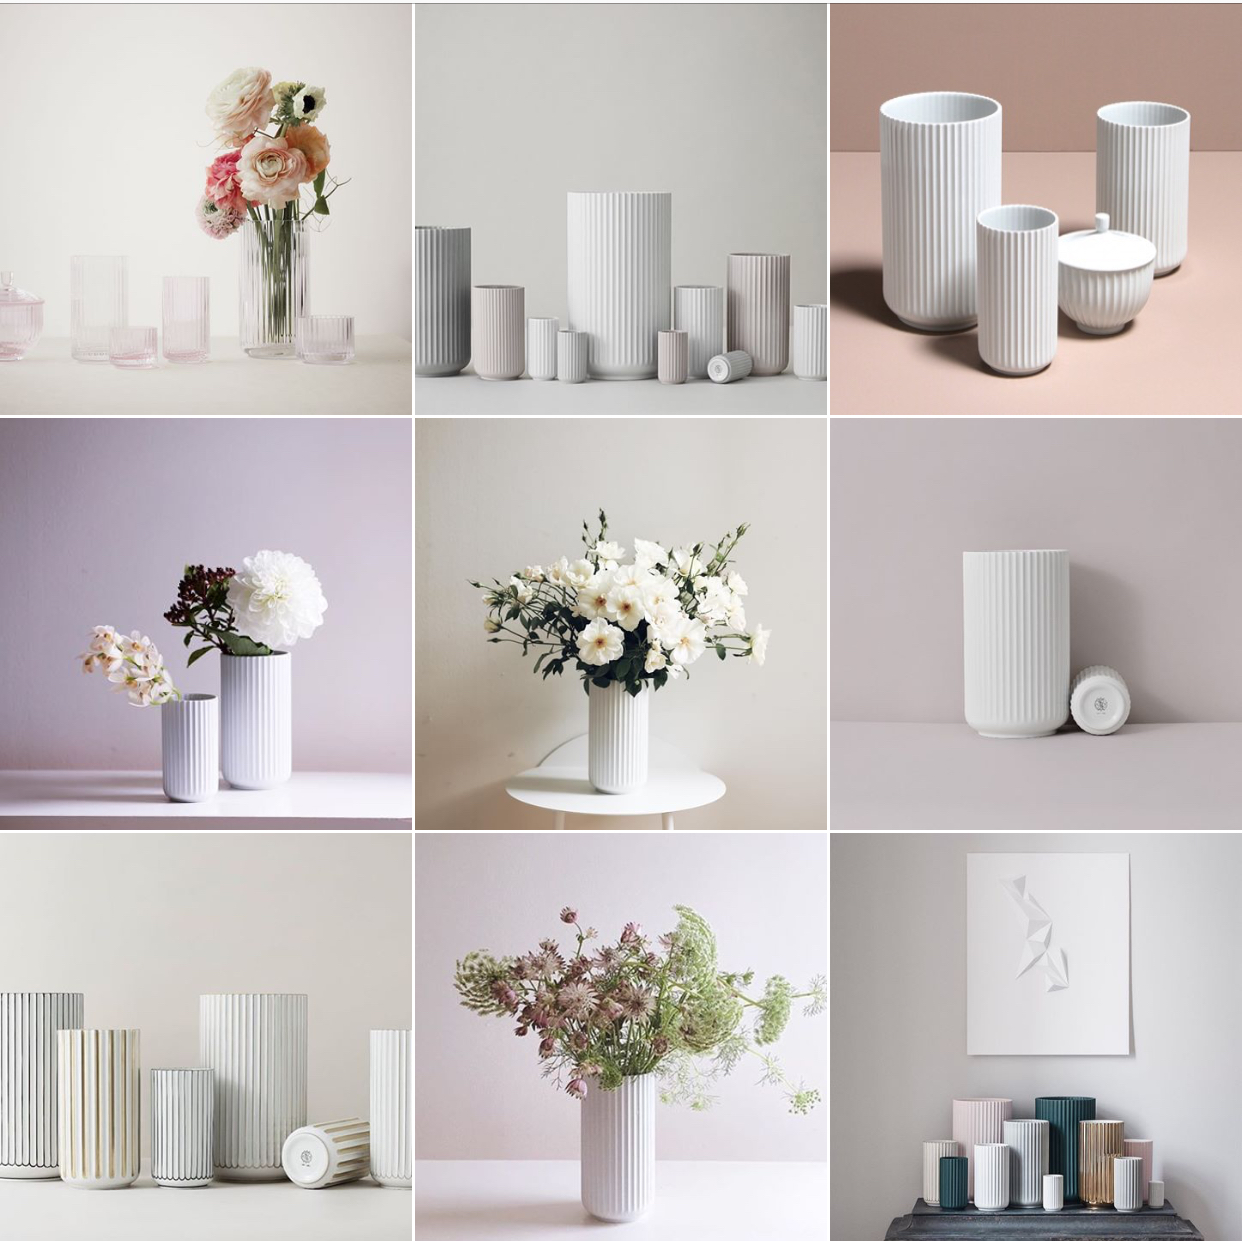 The Lyngby vase: @michelleogundehin Instagram moodboard Photographs by @lyngbyporcelain and @nonihana_